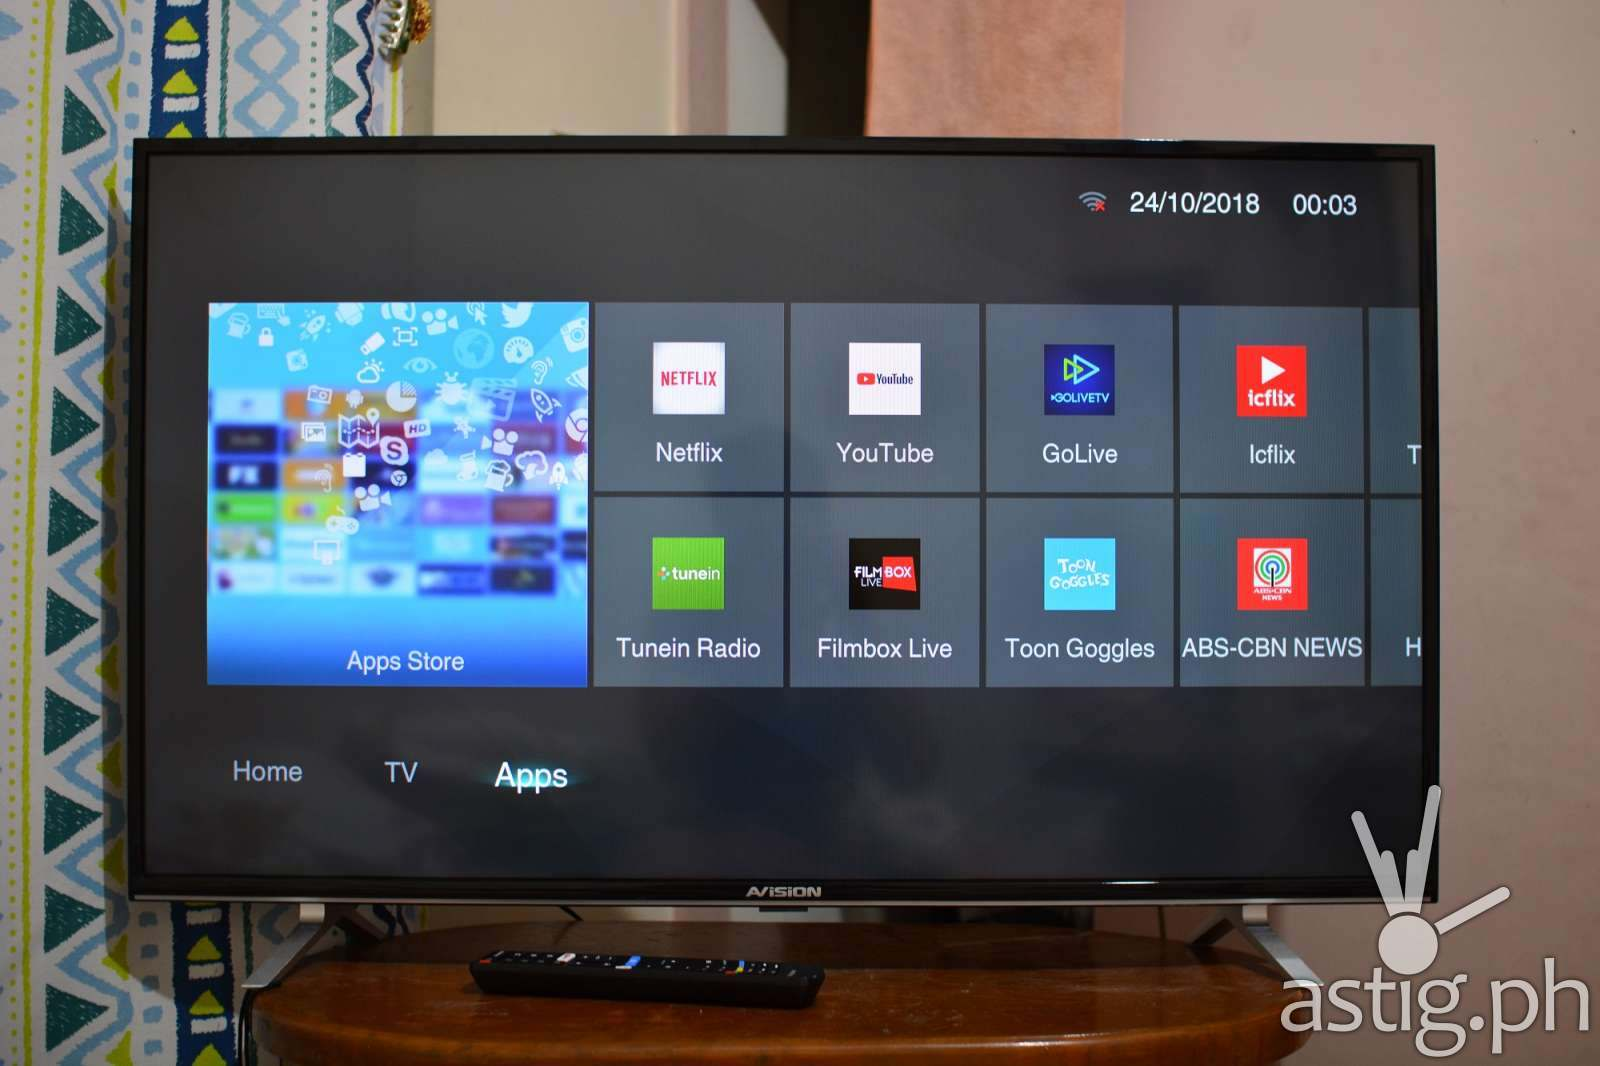 AVision 43FL801 Smart LED TV - Smart apps